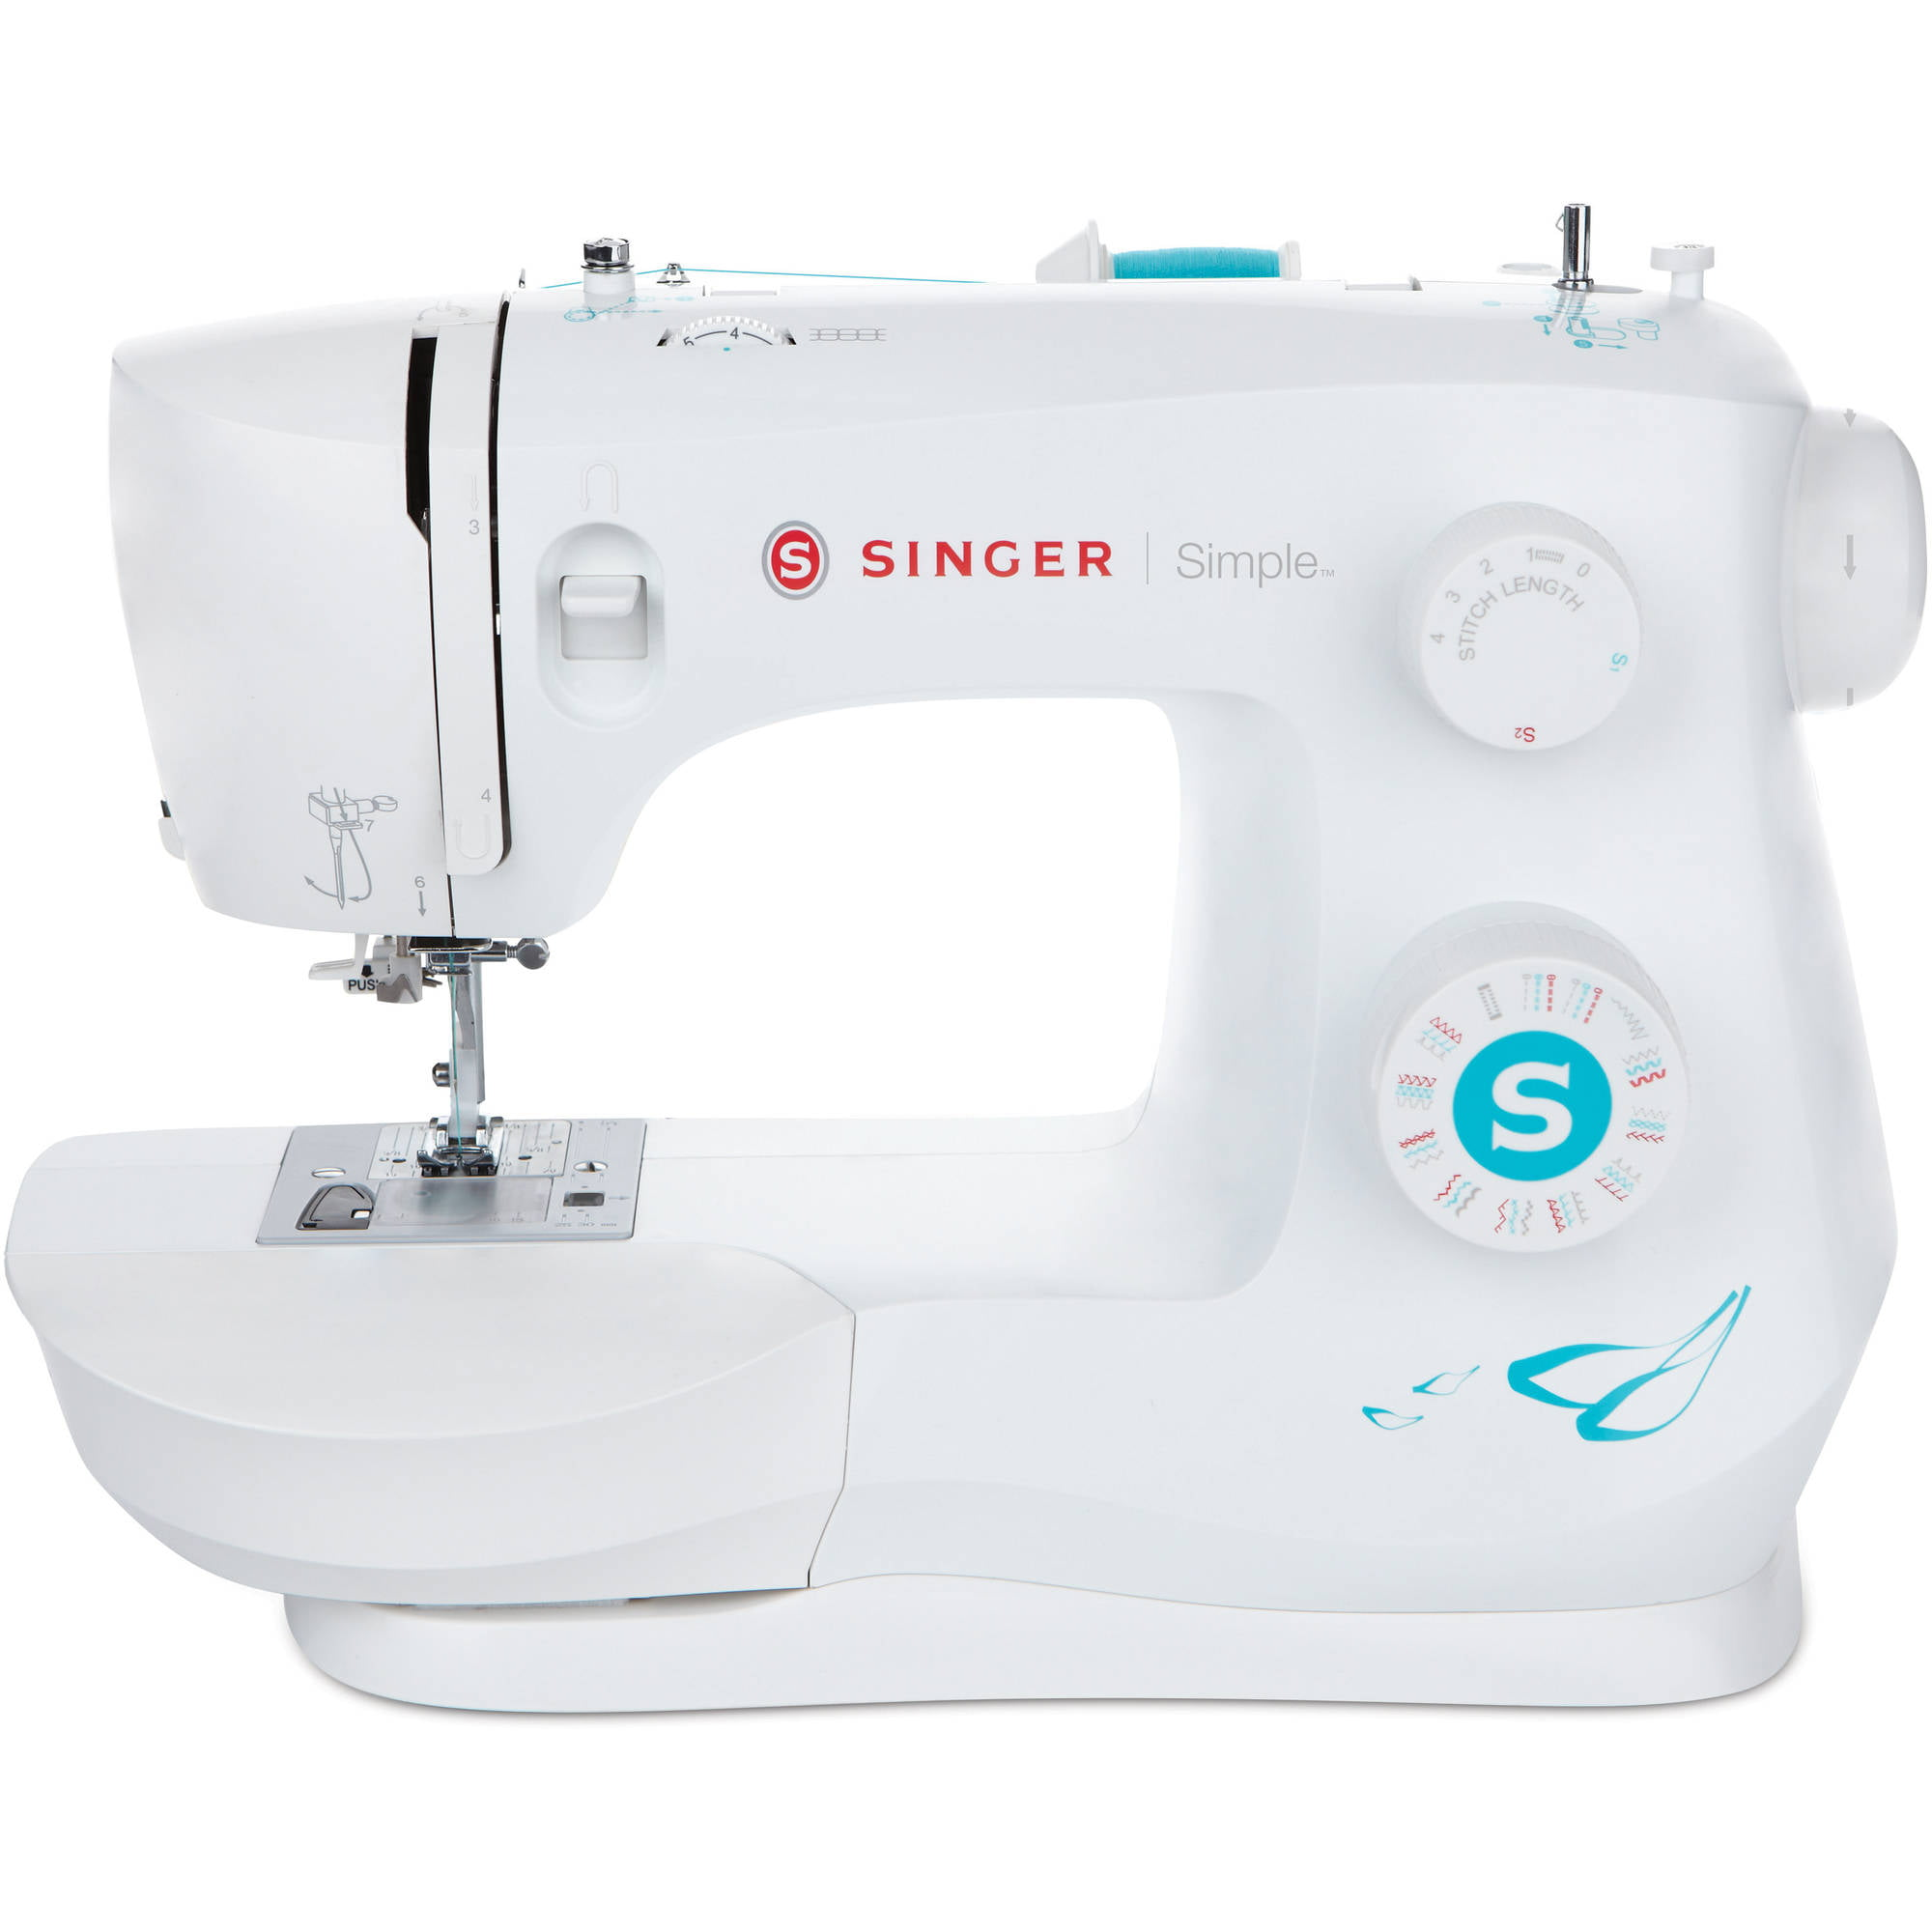 12 Stitches, 2 Speeds, Foot Pedal, LED Sewing Lamp Small Household Electric Overlock Sewing Machines CL-033-D Chooling Sewing Machine